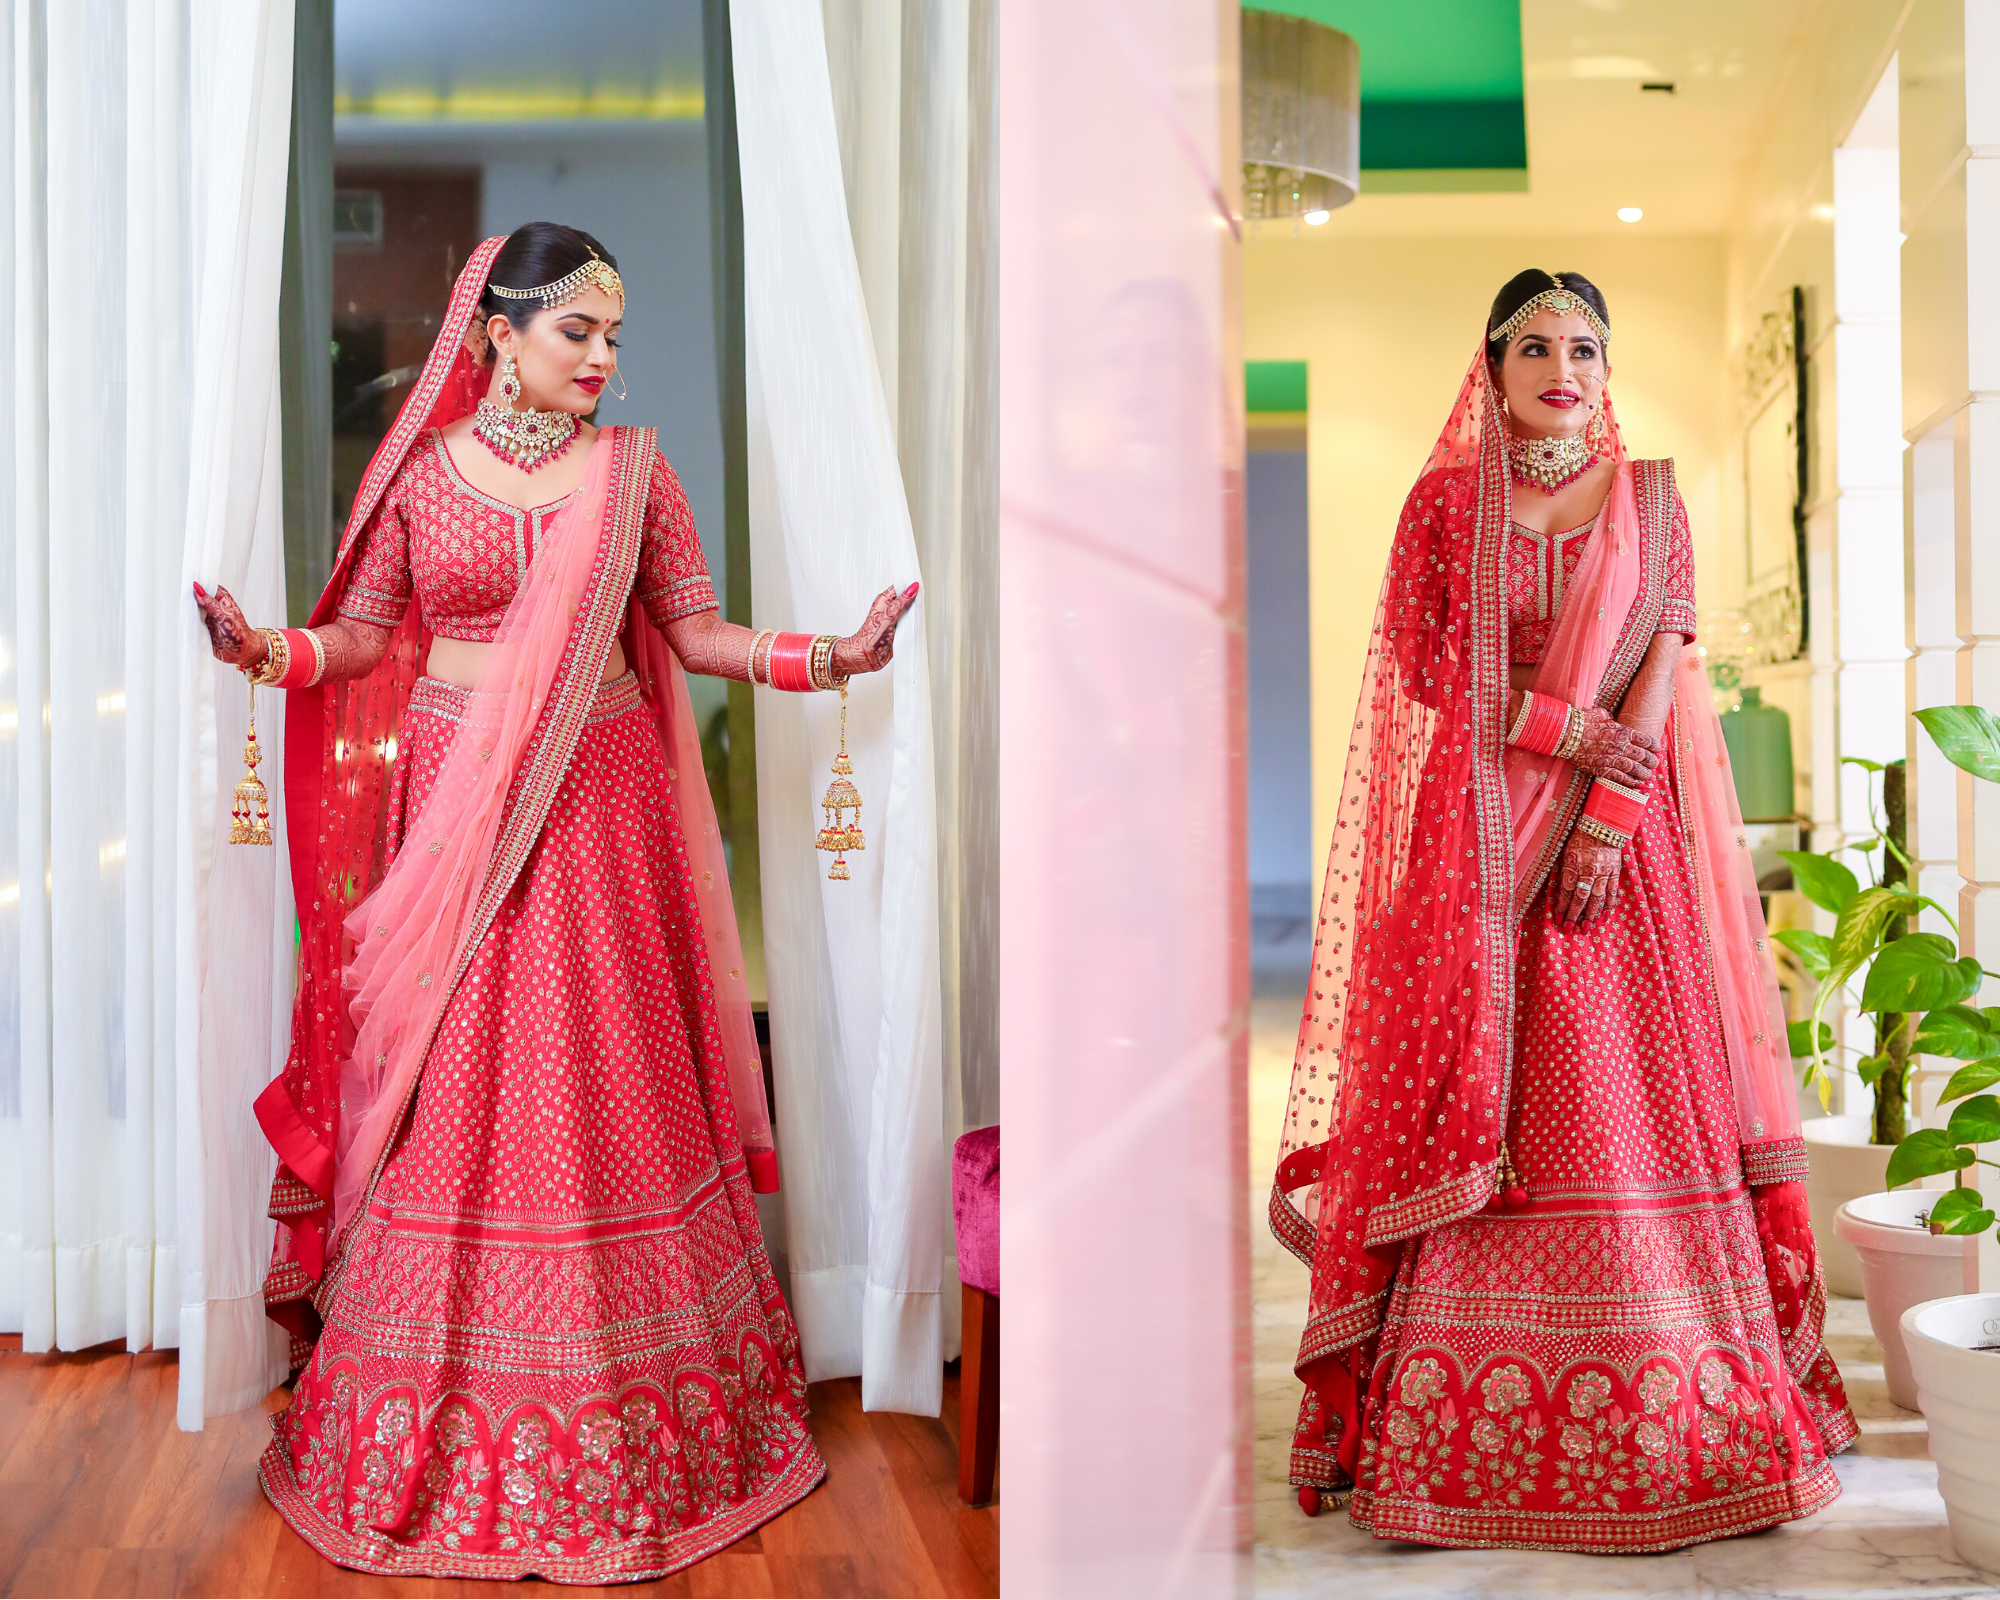 Gorgeous bride in Red lehenga